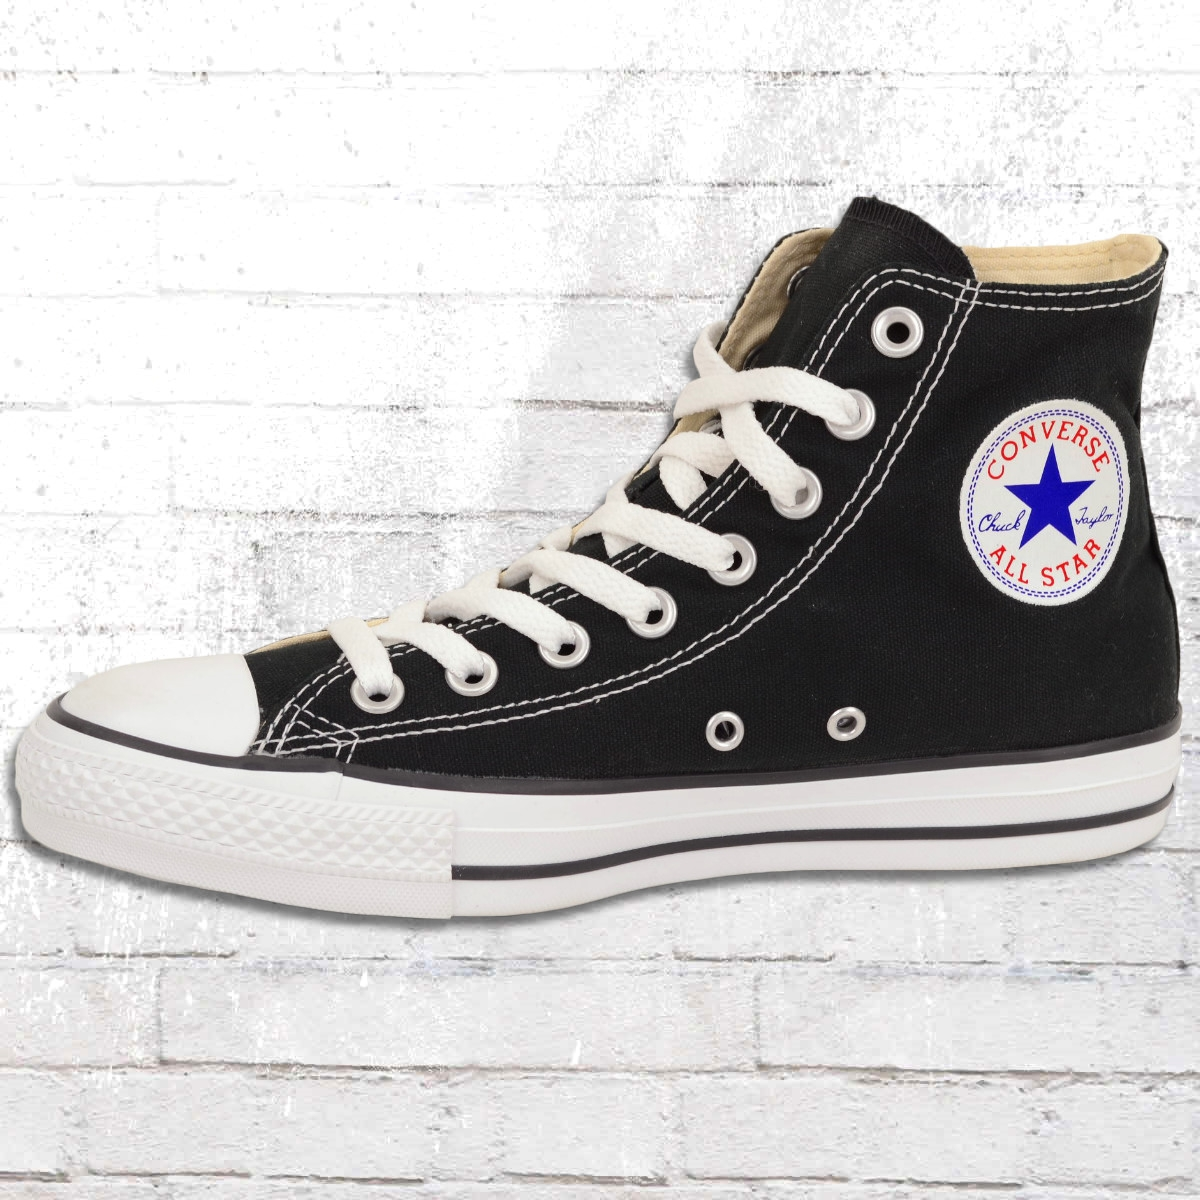 order now converse chucks shoes m 9160 black. Black Bedroom Furniture Sets. Home Design Ideas